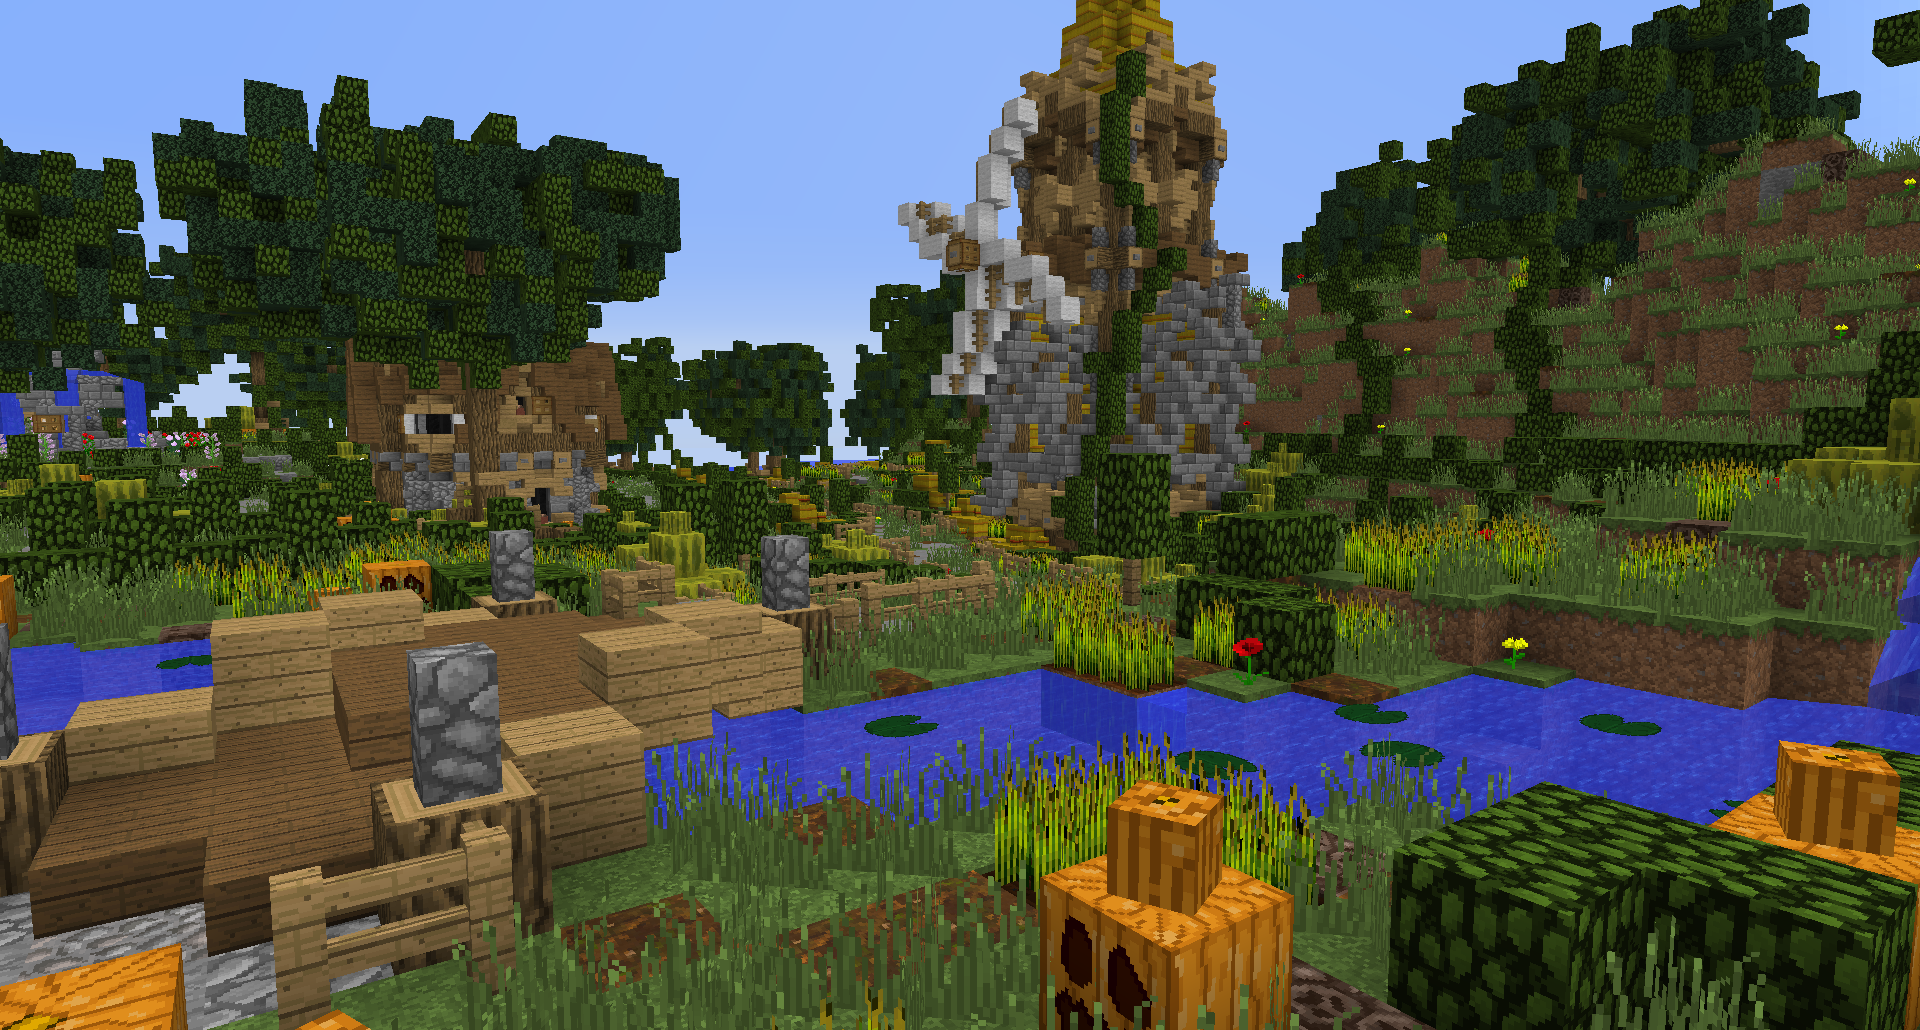 Minecraft Village Garden minecraft #buildings #simple #fantasy #lollyherz #village #house